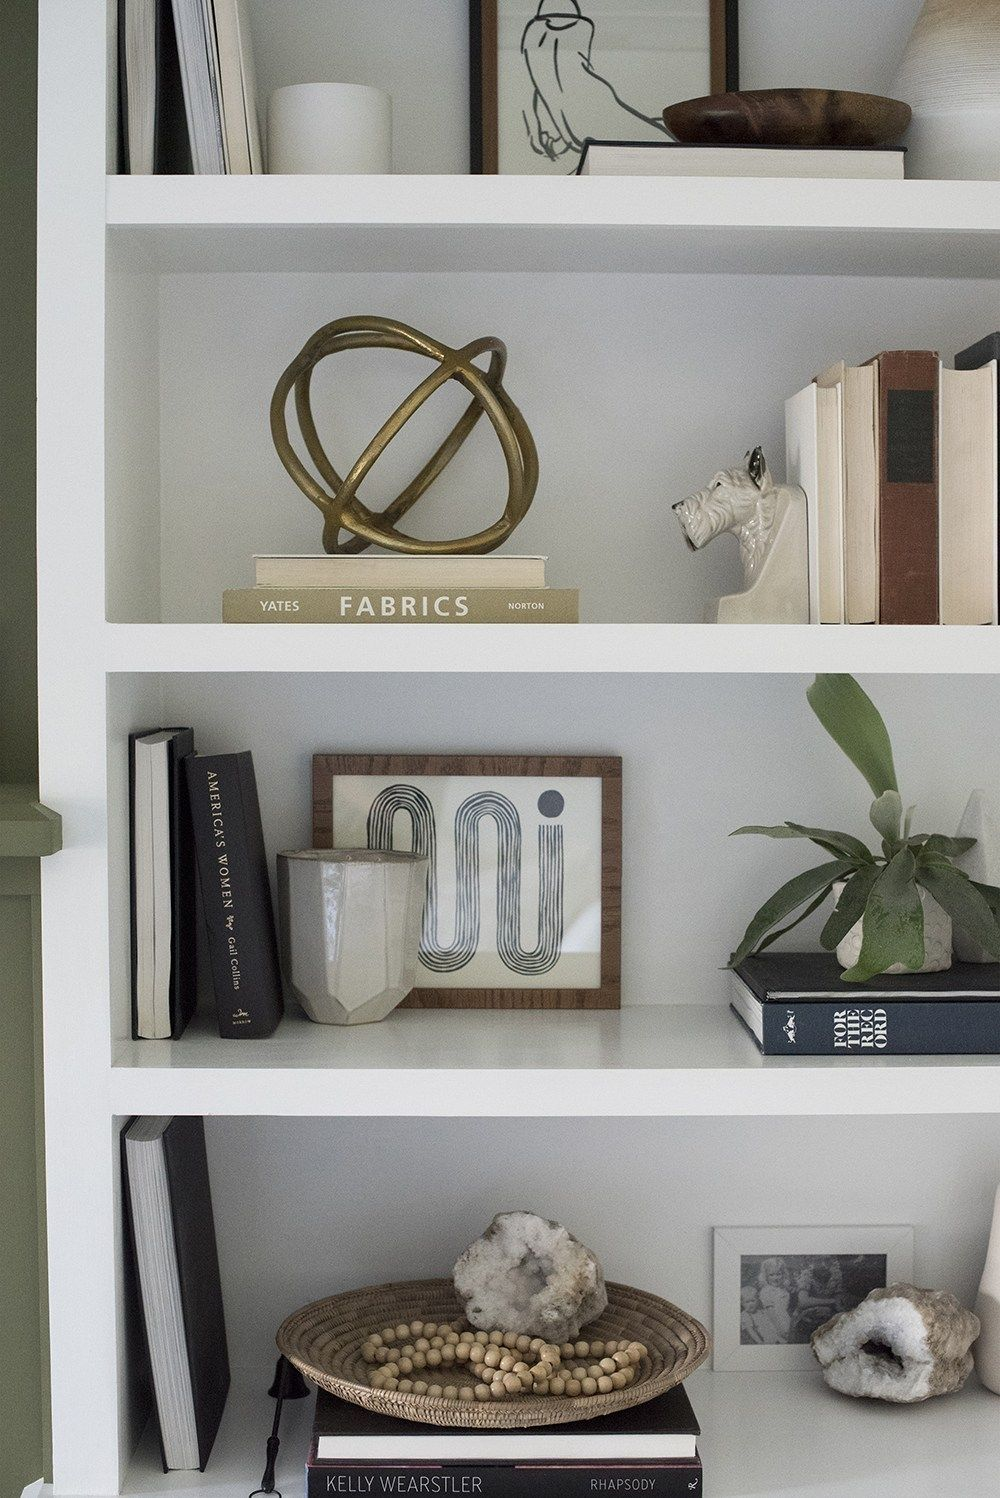 5 Inspiring Shelf Styling Built In Posts Room For Tuesda